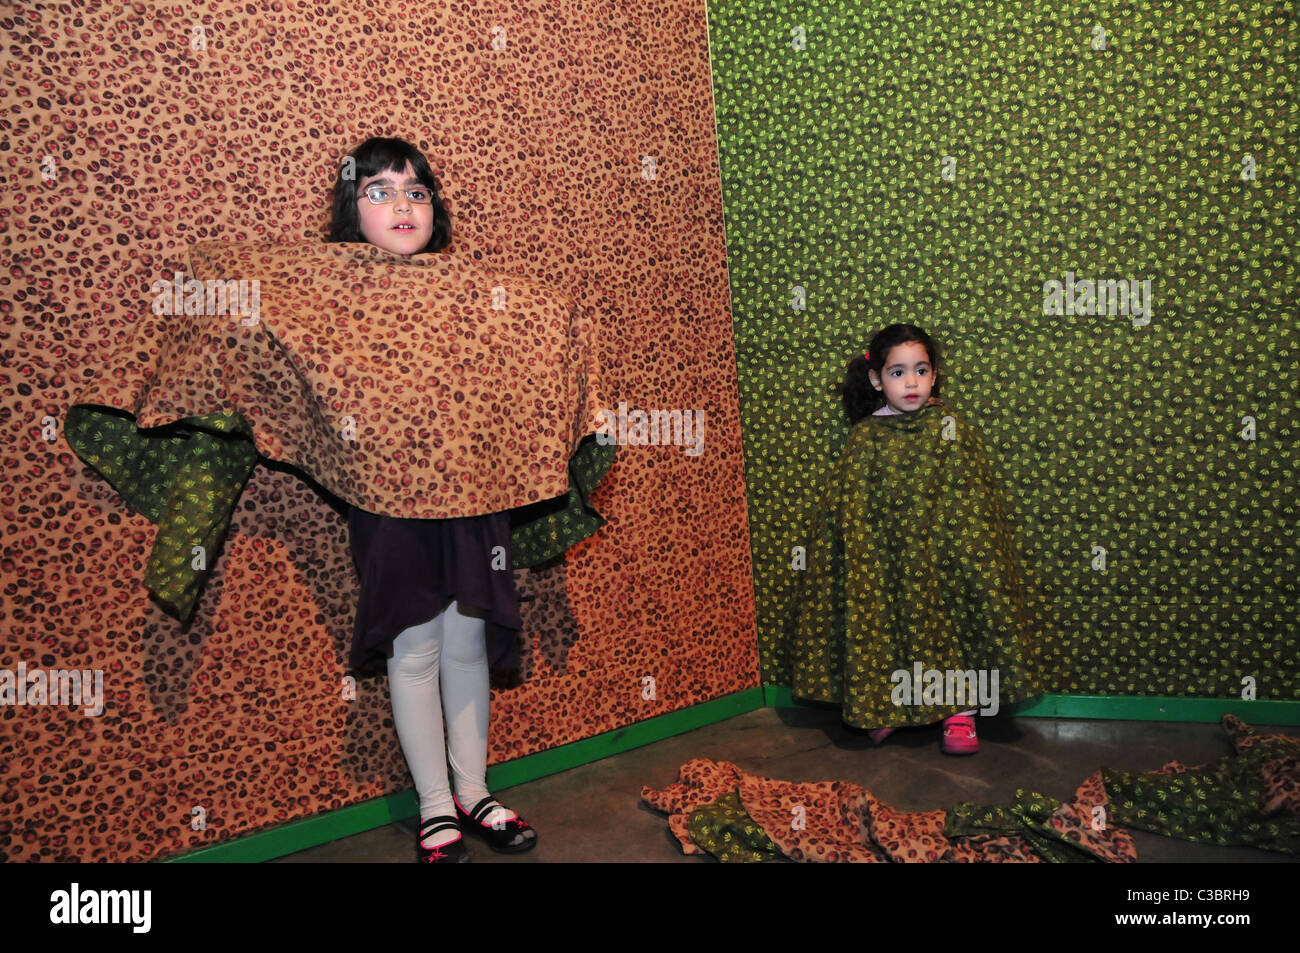 Israel, Haifa, MadaTech The Israel national Museum of Science Camouflage and disguise - Stock Image